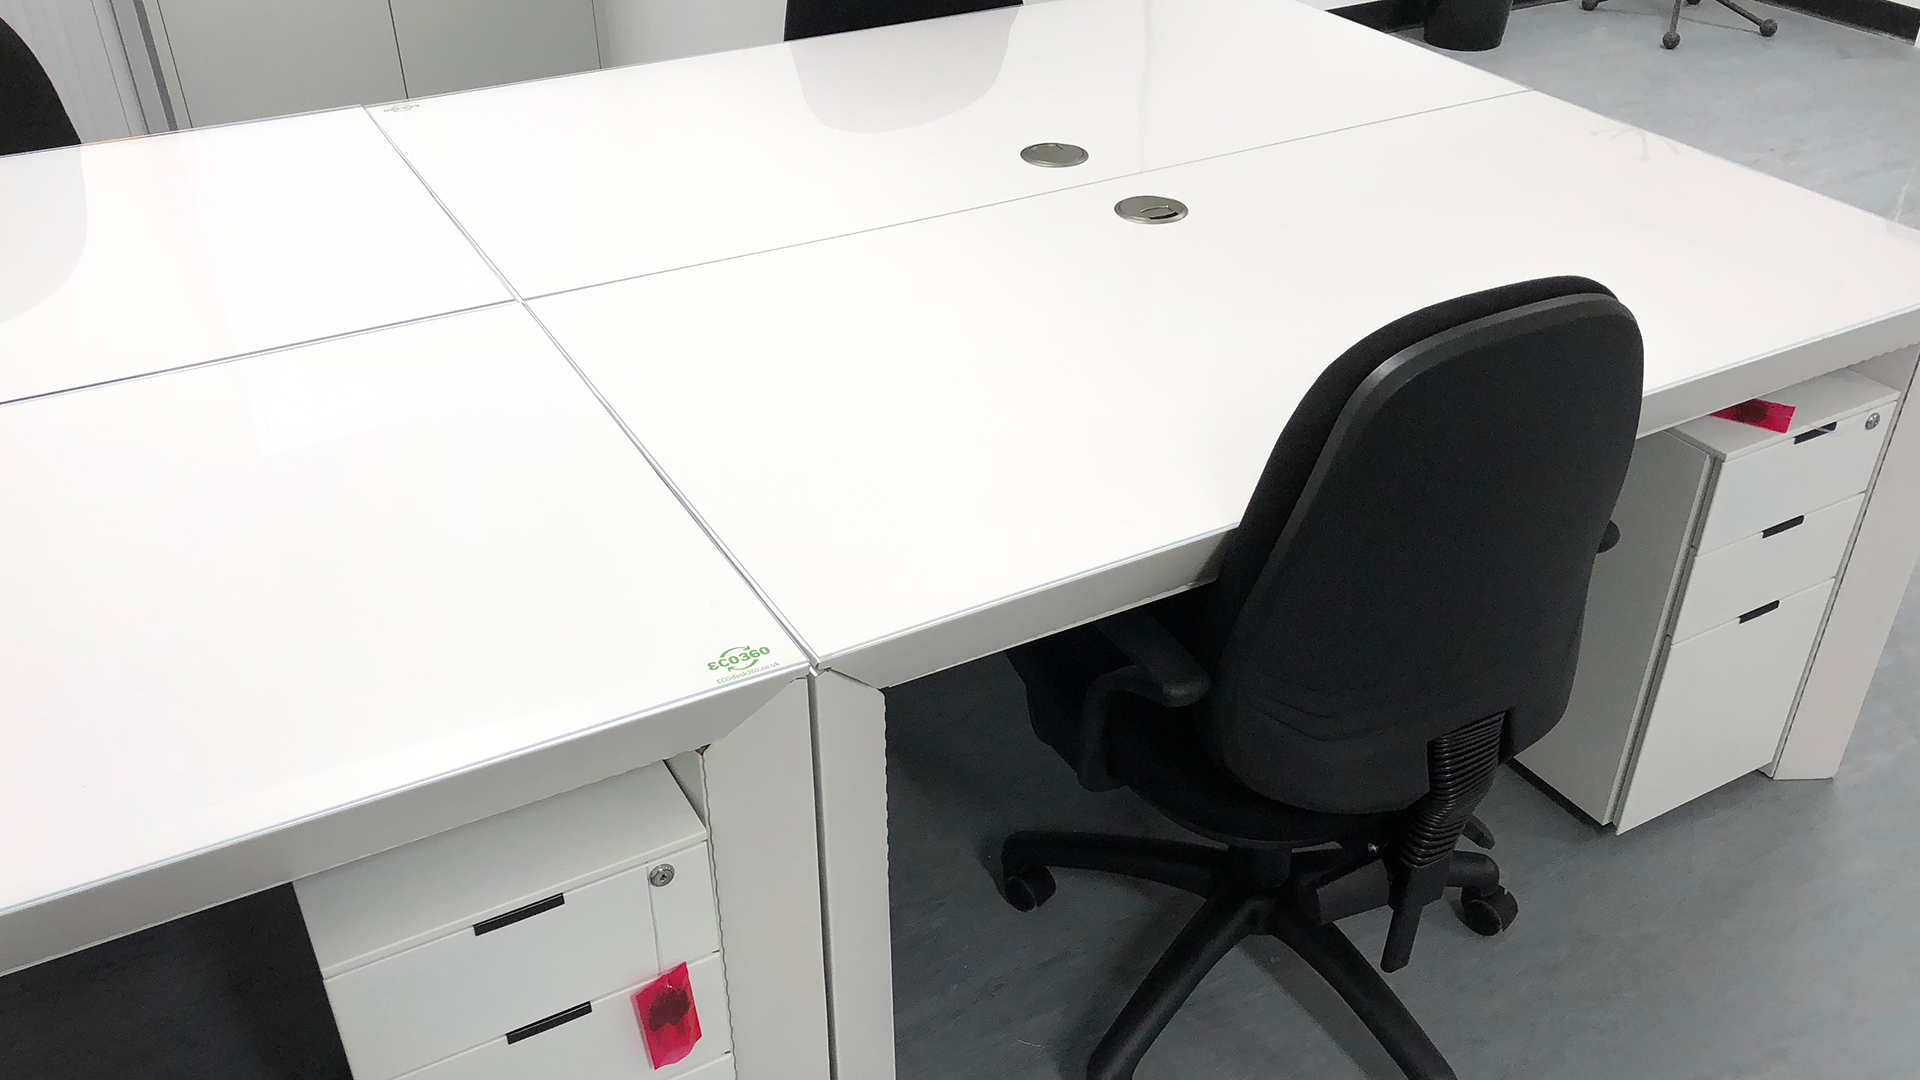 More fully recyclable office furniture at Skanska